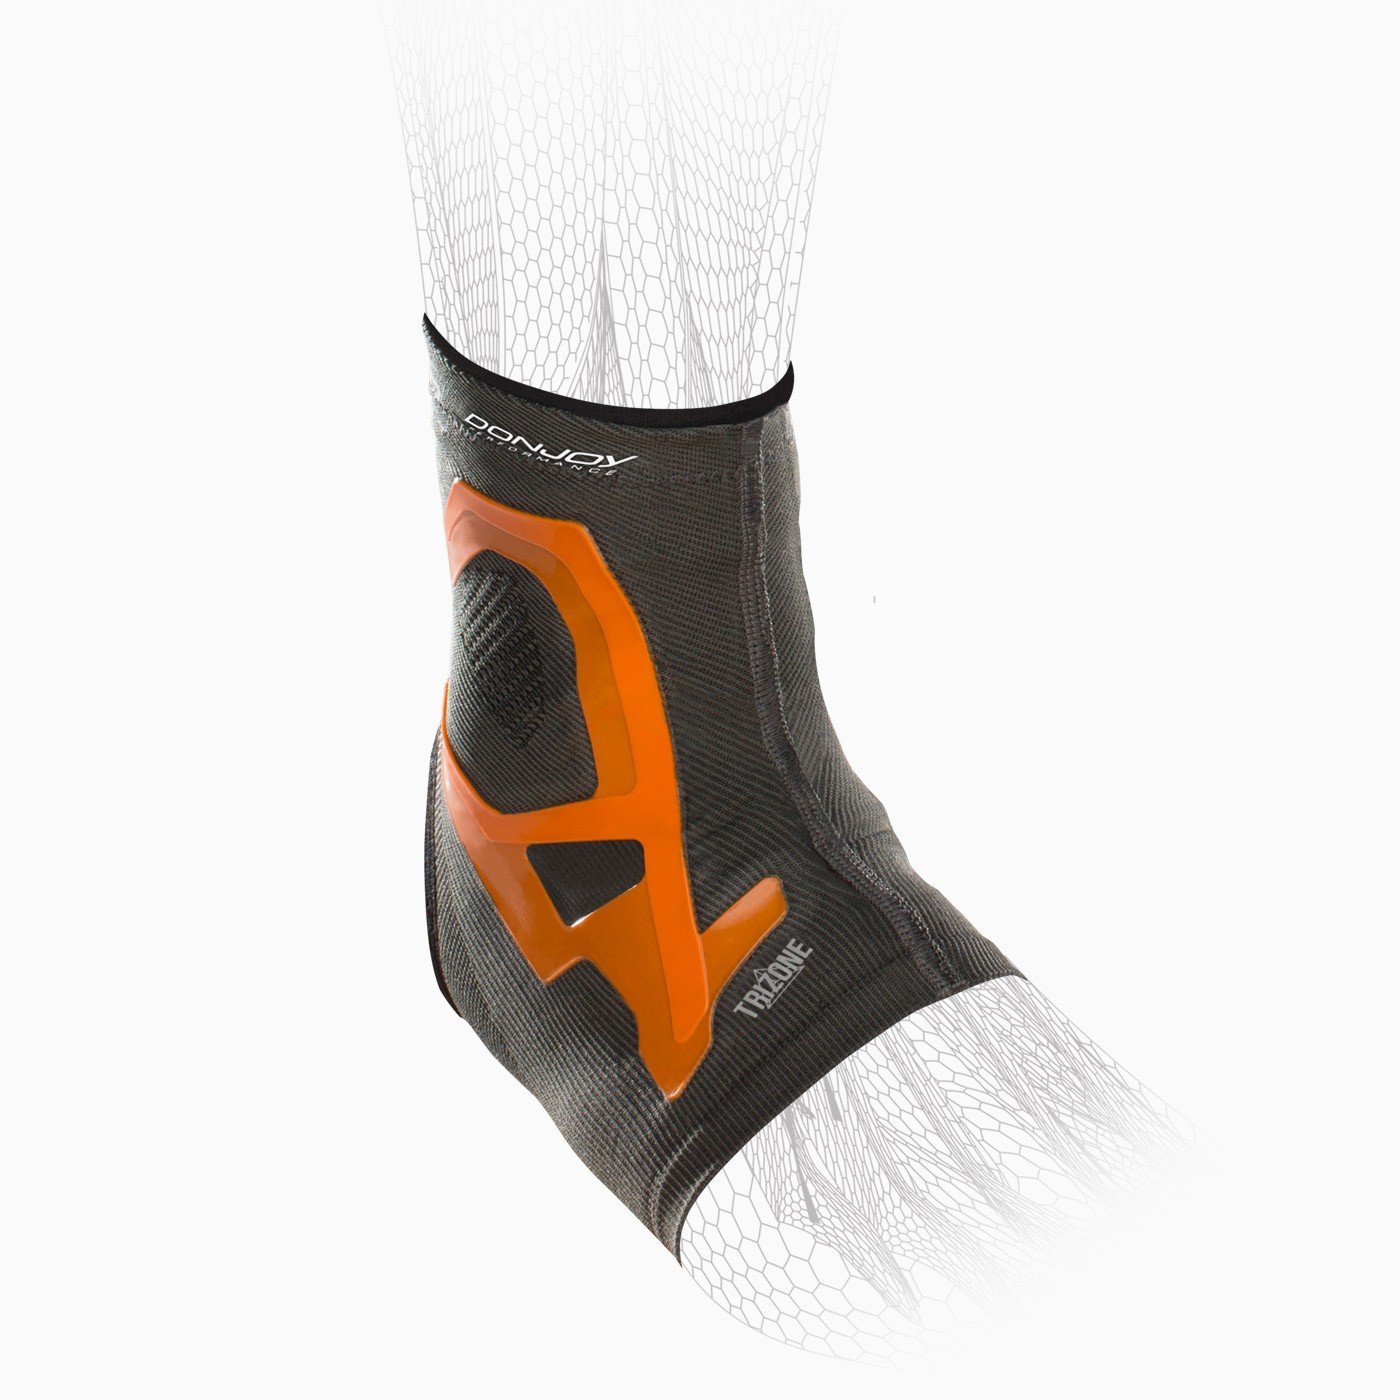 DonJoy Performance TRIZONE Compression: Ankle Support Brace, Orange, X-Large